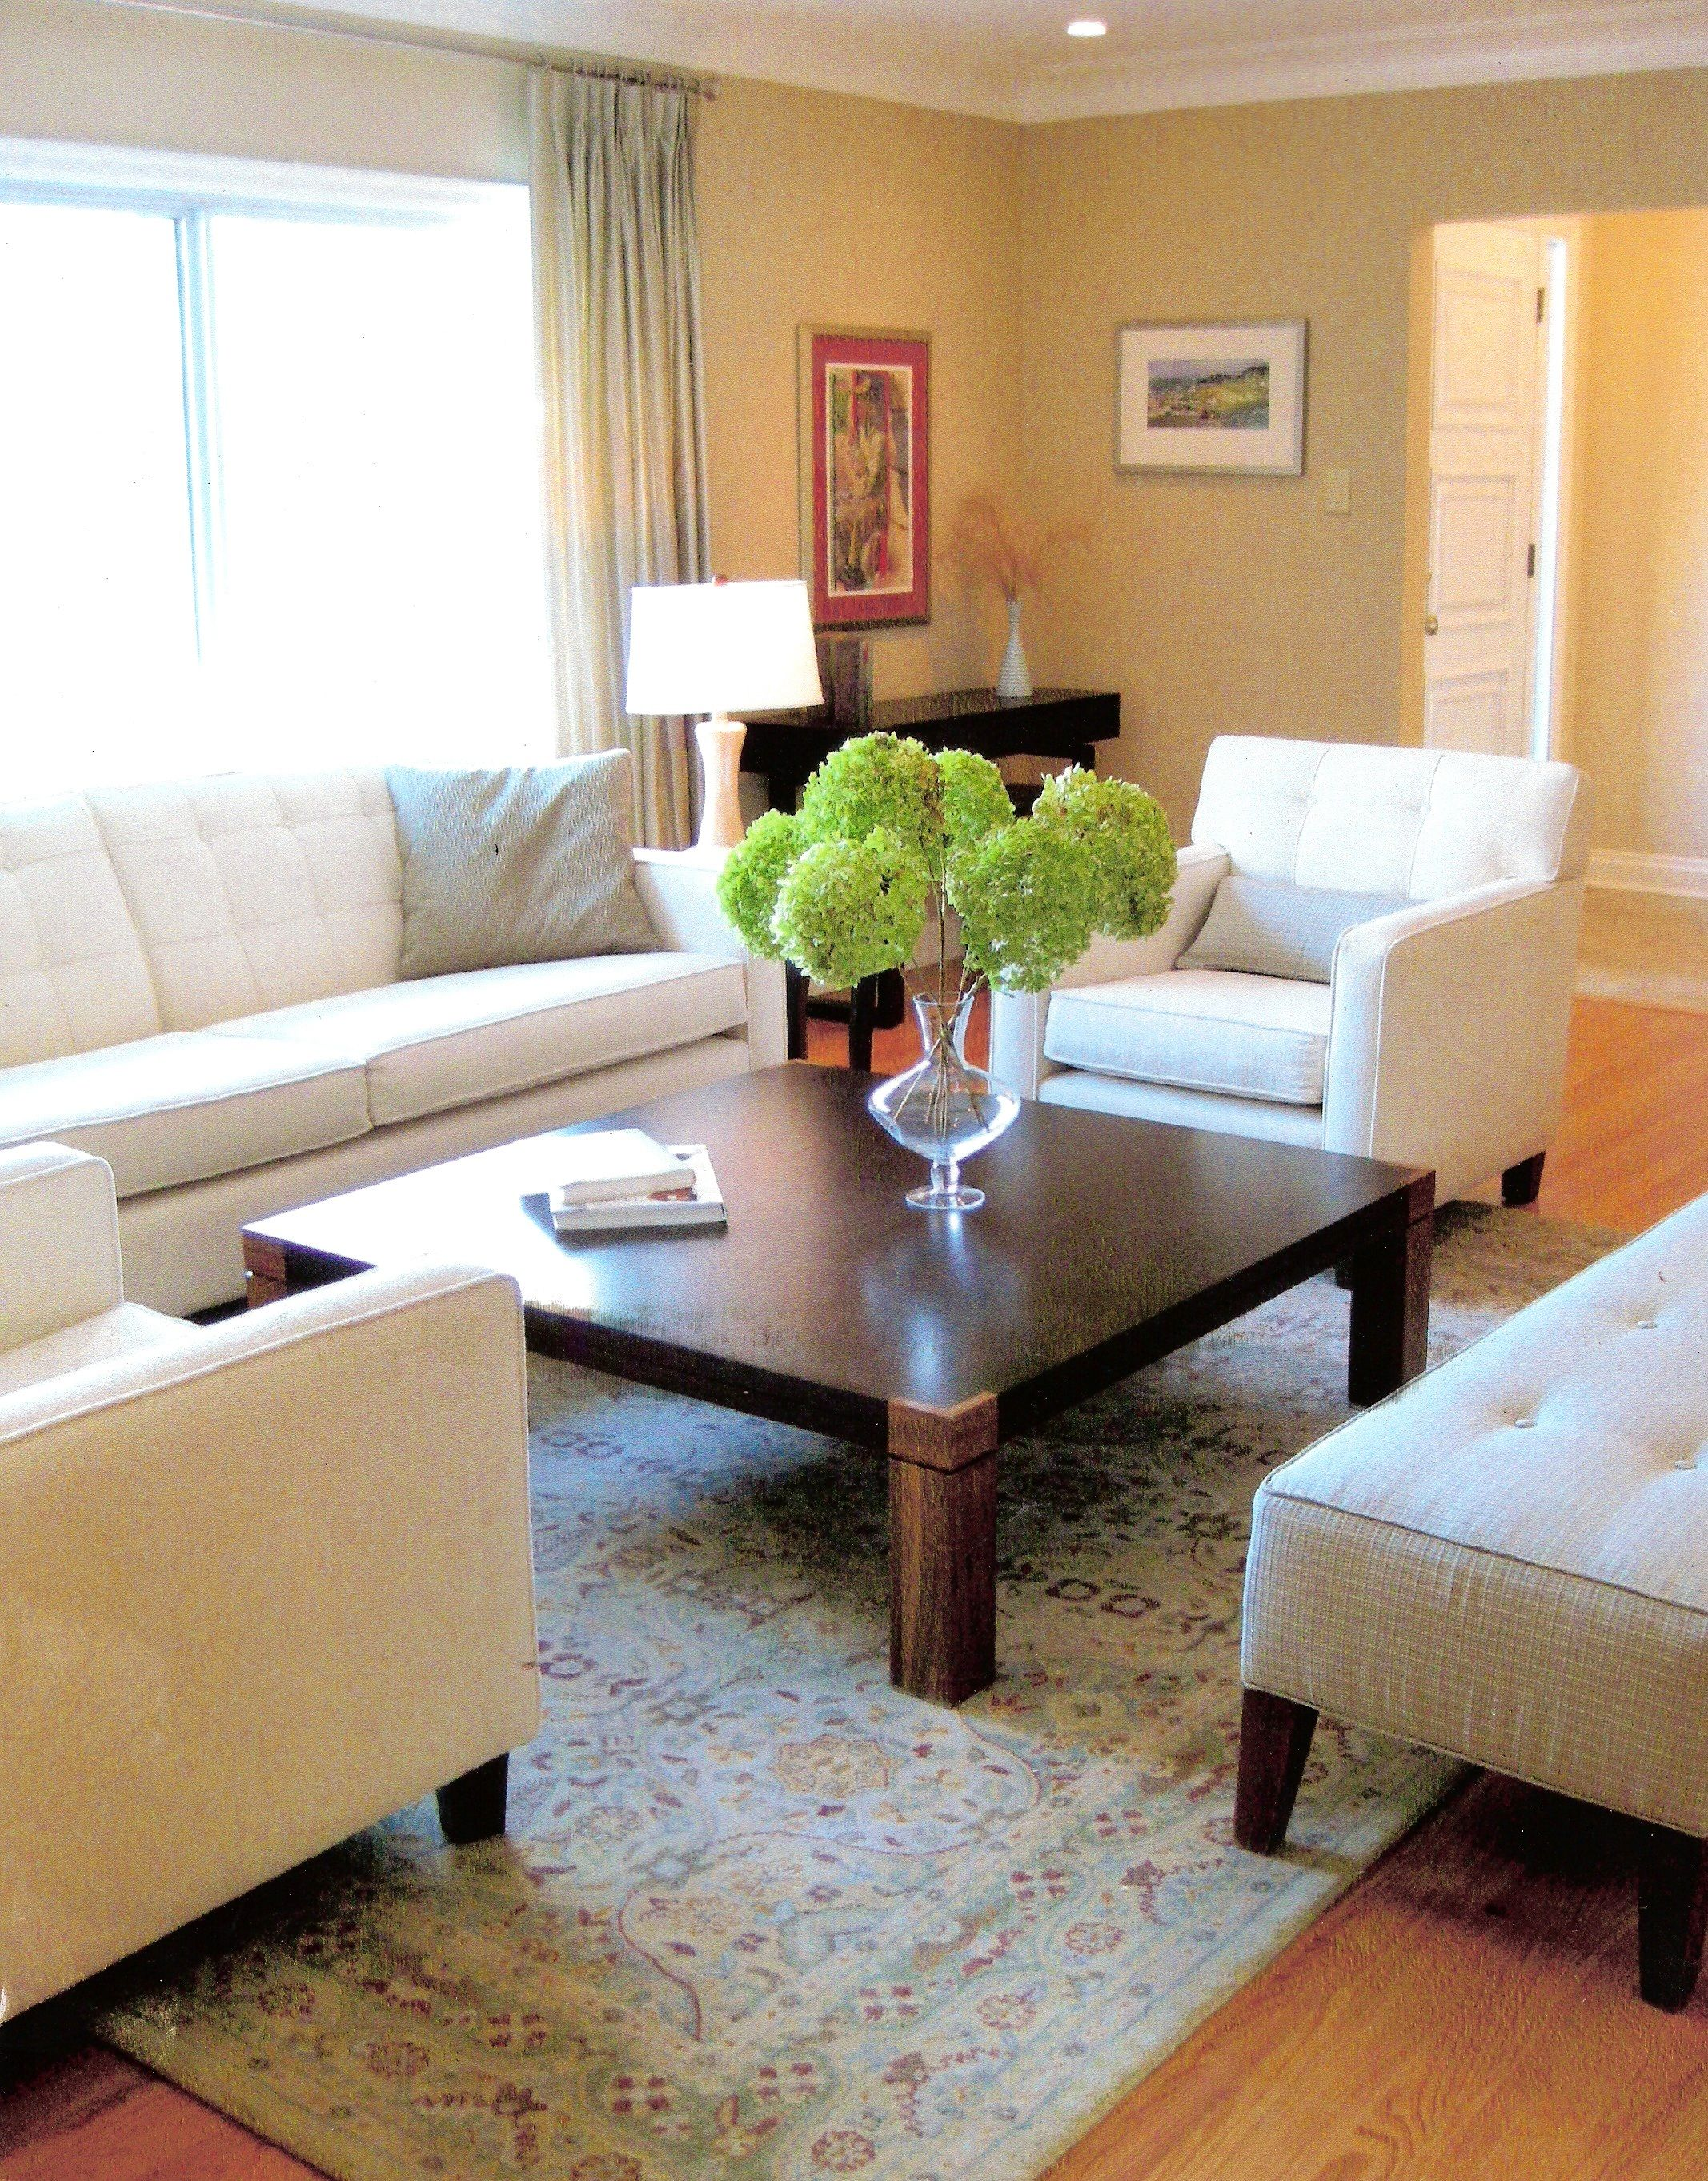 This huge L-shaped room had an awkward layout that we concord by ...